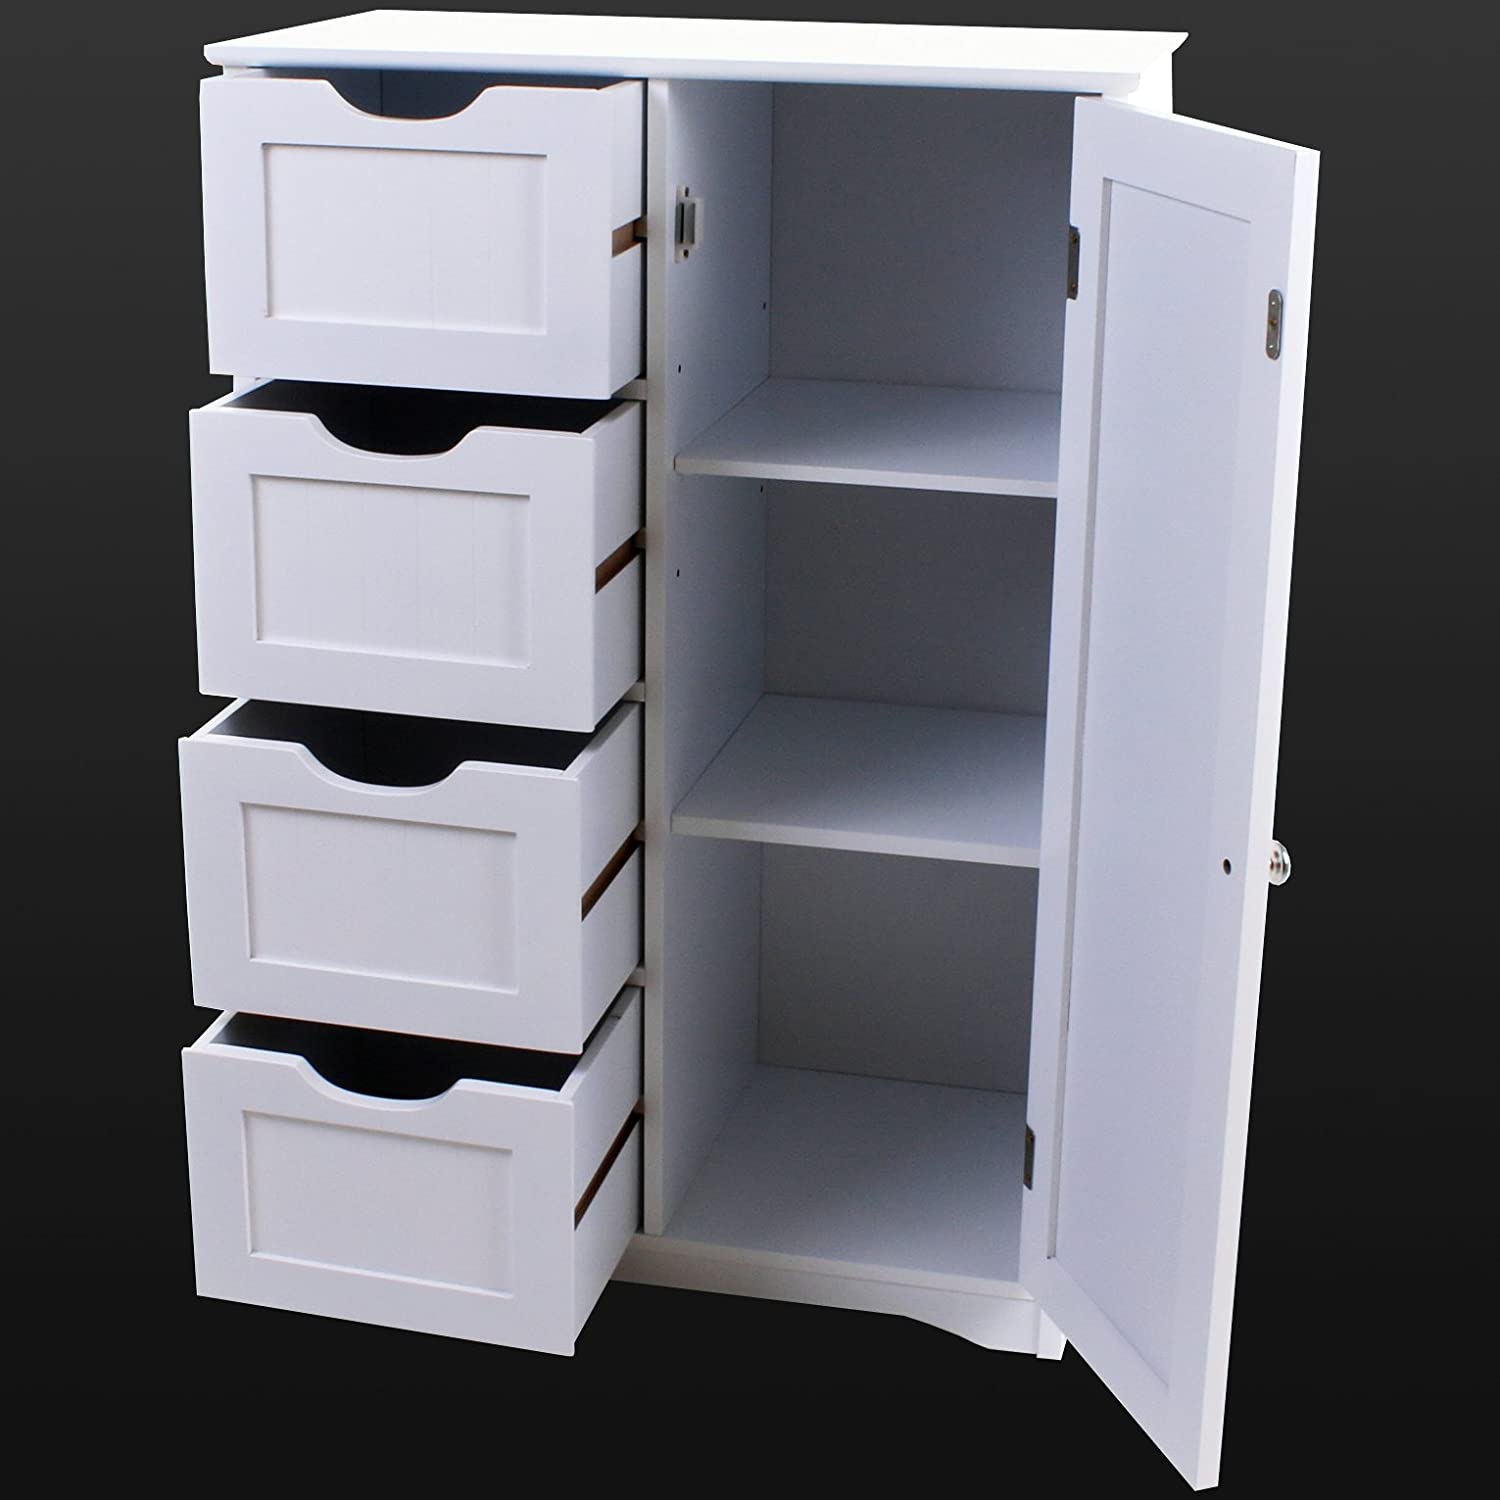 bathroom ideas furniture storage home best ikea at drawers attractive cabinet minimalist references